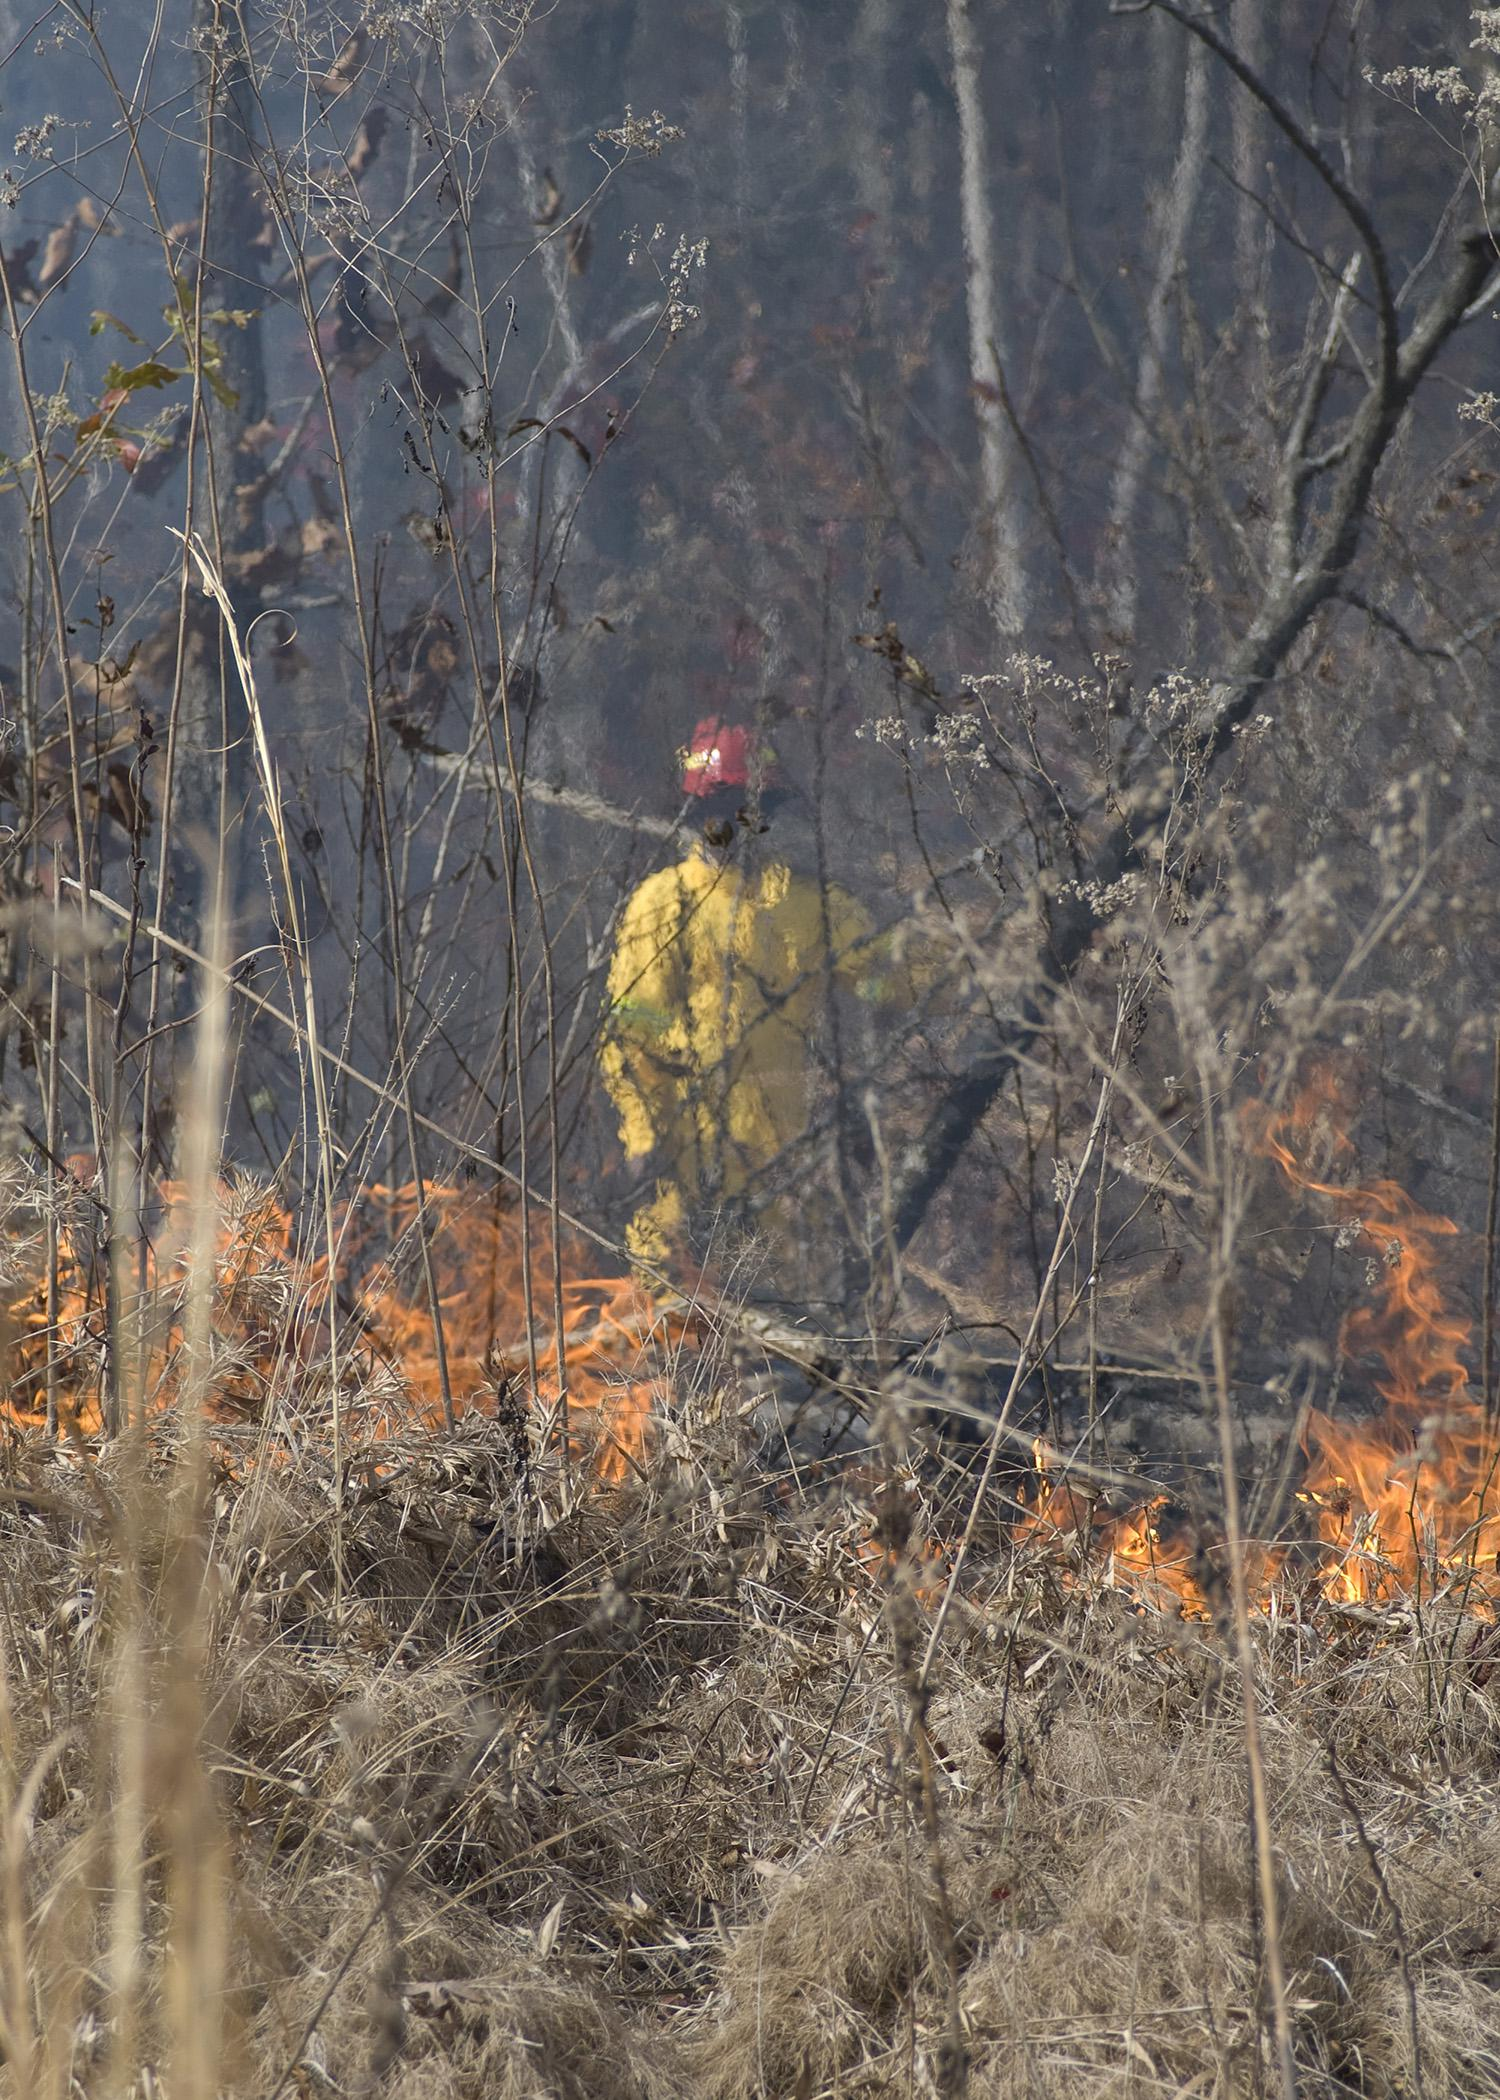 Clyde Brown, an agricultural technician with Mississippi State University's Forest and Wildlife Research Center, stands on a fire lane to monitor a prescribed fire on a cut-over in Oktibbeha County. After the site was clear cut and an aerial application of herbicide was applied, it was burned and replanted in pines. (Photo by MSU Forest and Wildlife Research Center)